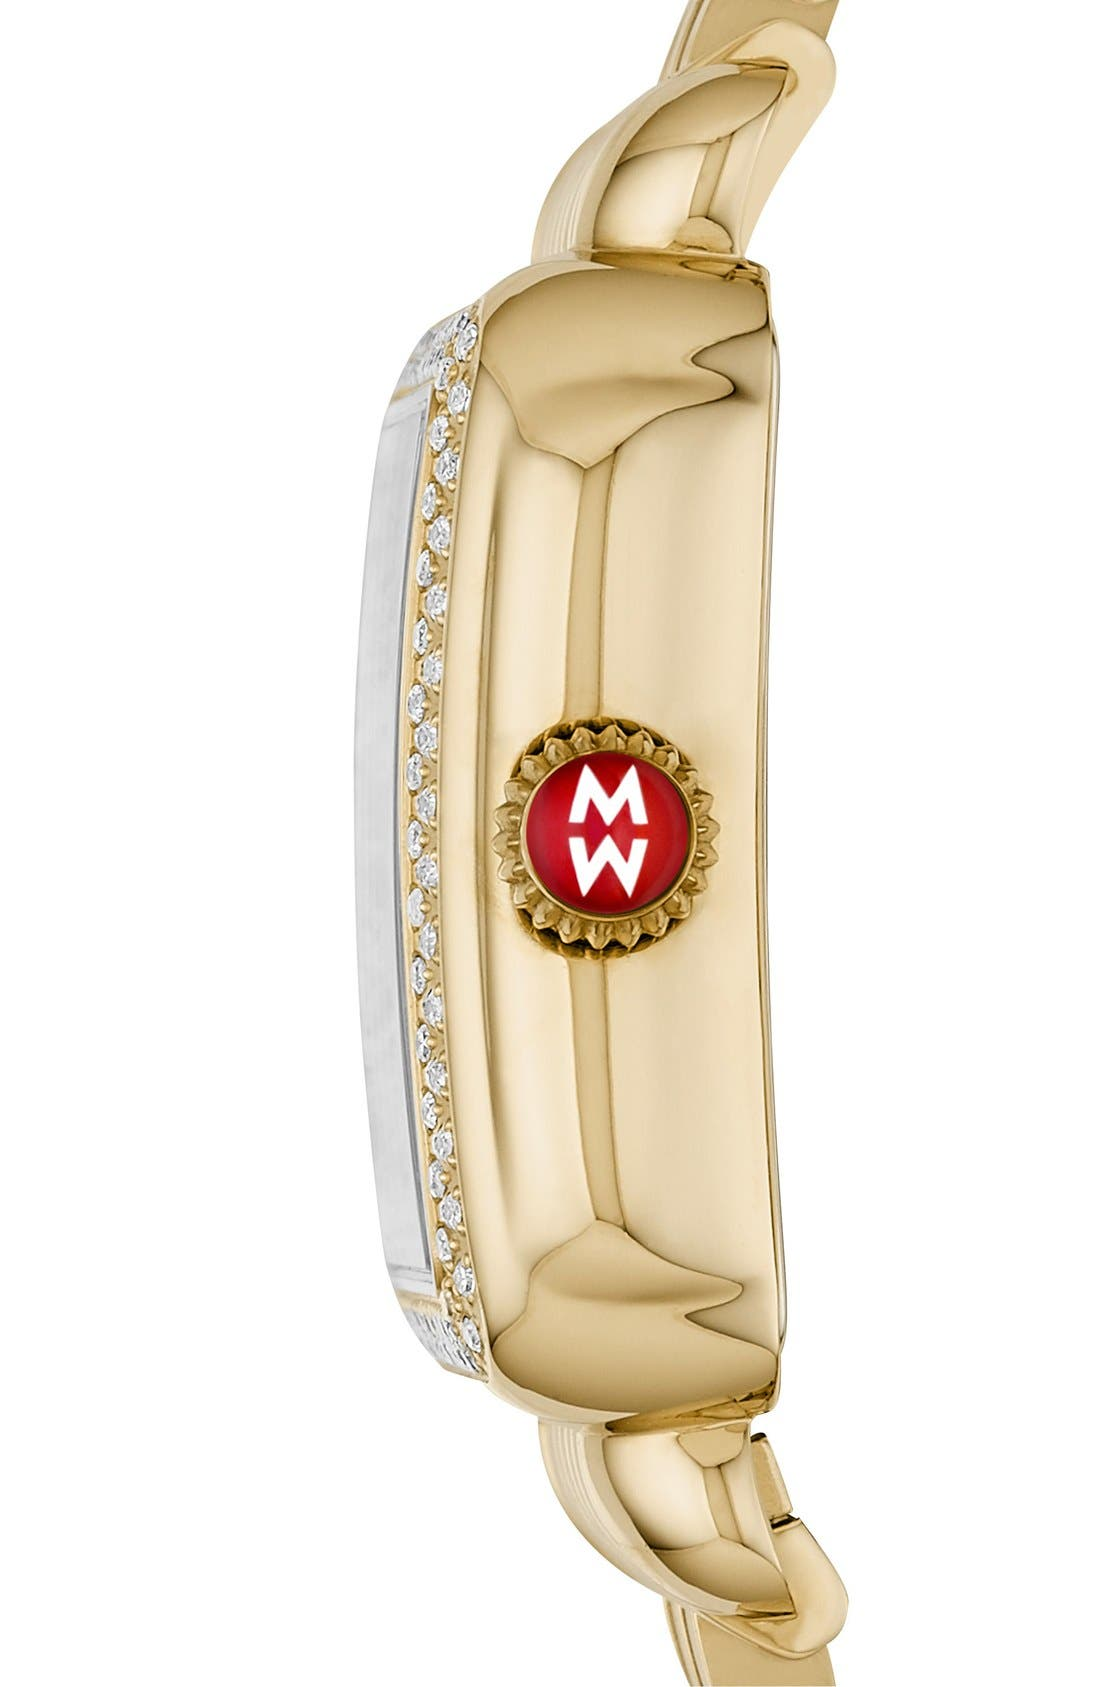 Deco 18mm Gold Plated Bracelet Watchband,                             Alternate thumbnail 4, color,                             GOLD